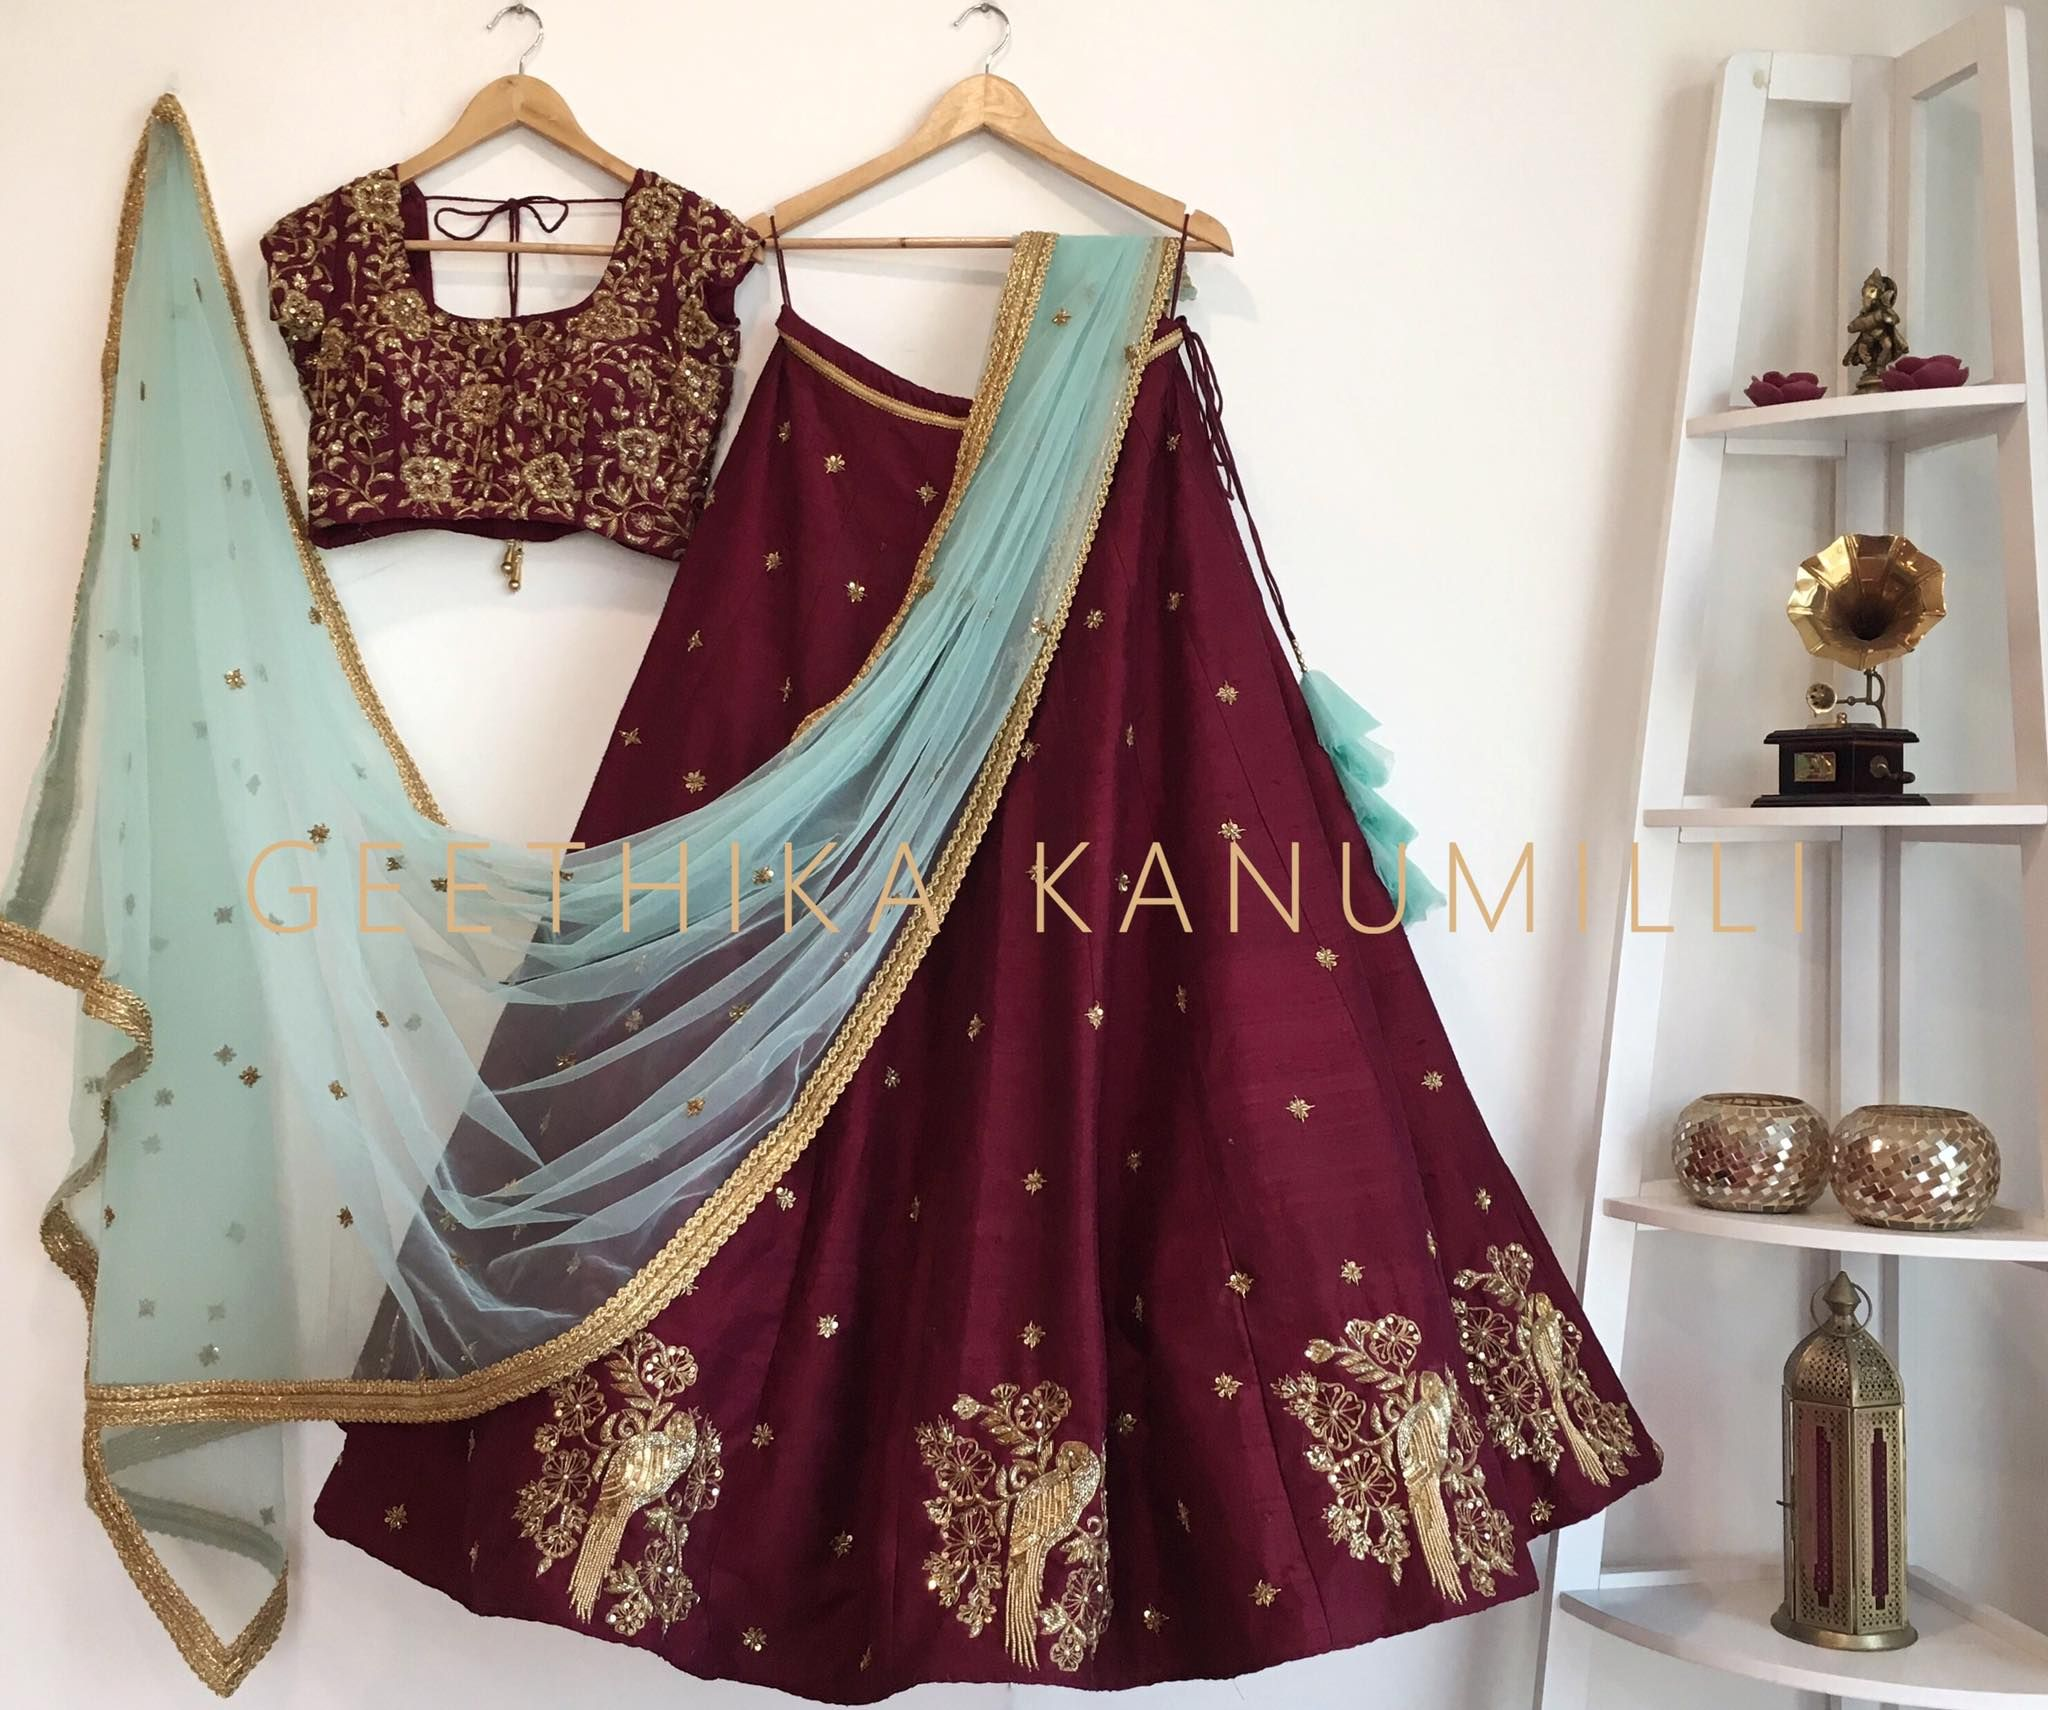 c9ac4fab54 Beautiful maroon color lehenga and designer blouse with powder blue net  duppata from Geethika Kanumilli. 23 May 2017